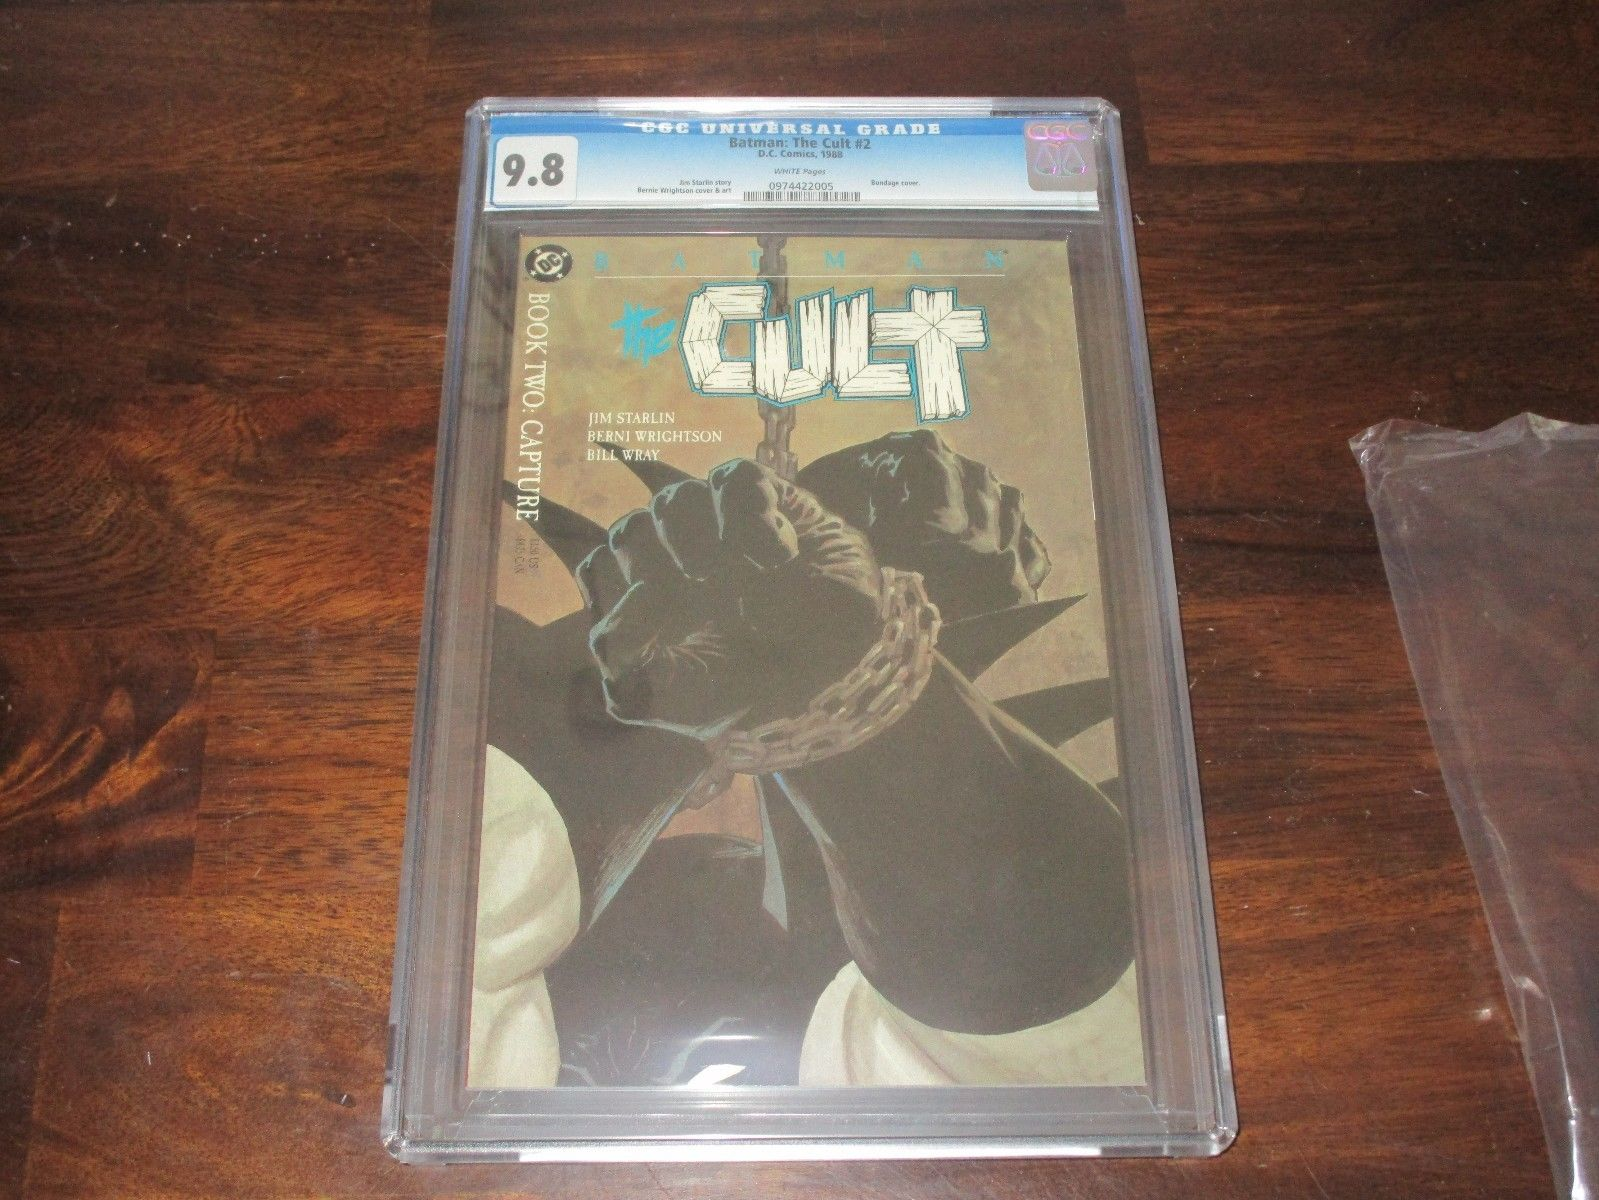 BATMAN THE CULT #2 CGC 9.8 JIM STARLIN BERNI WRIGHTSON BONDAGE COVER SWEET BOOK